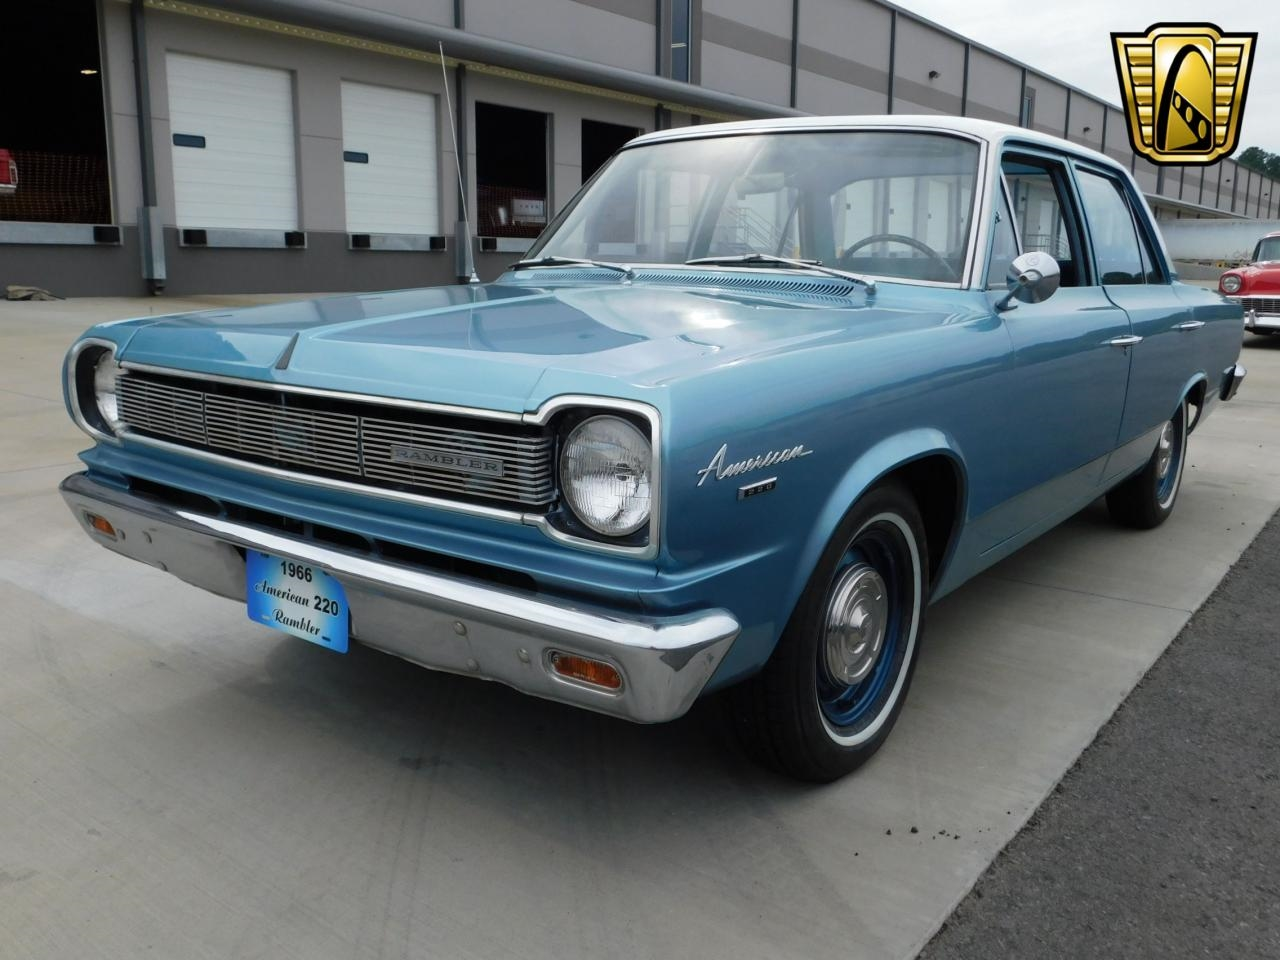 Details about 1966 AMC Other American